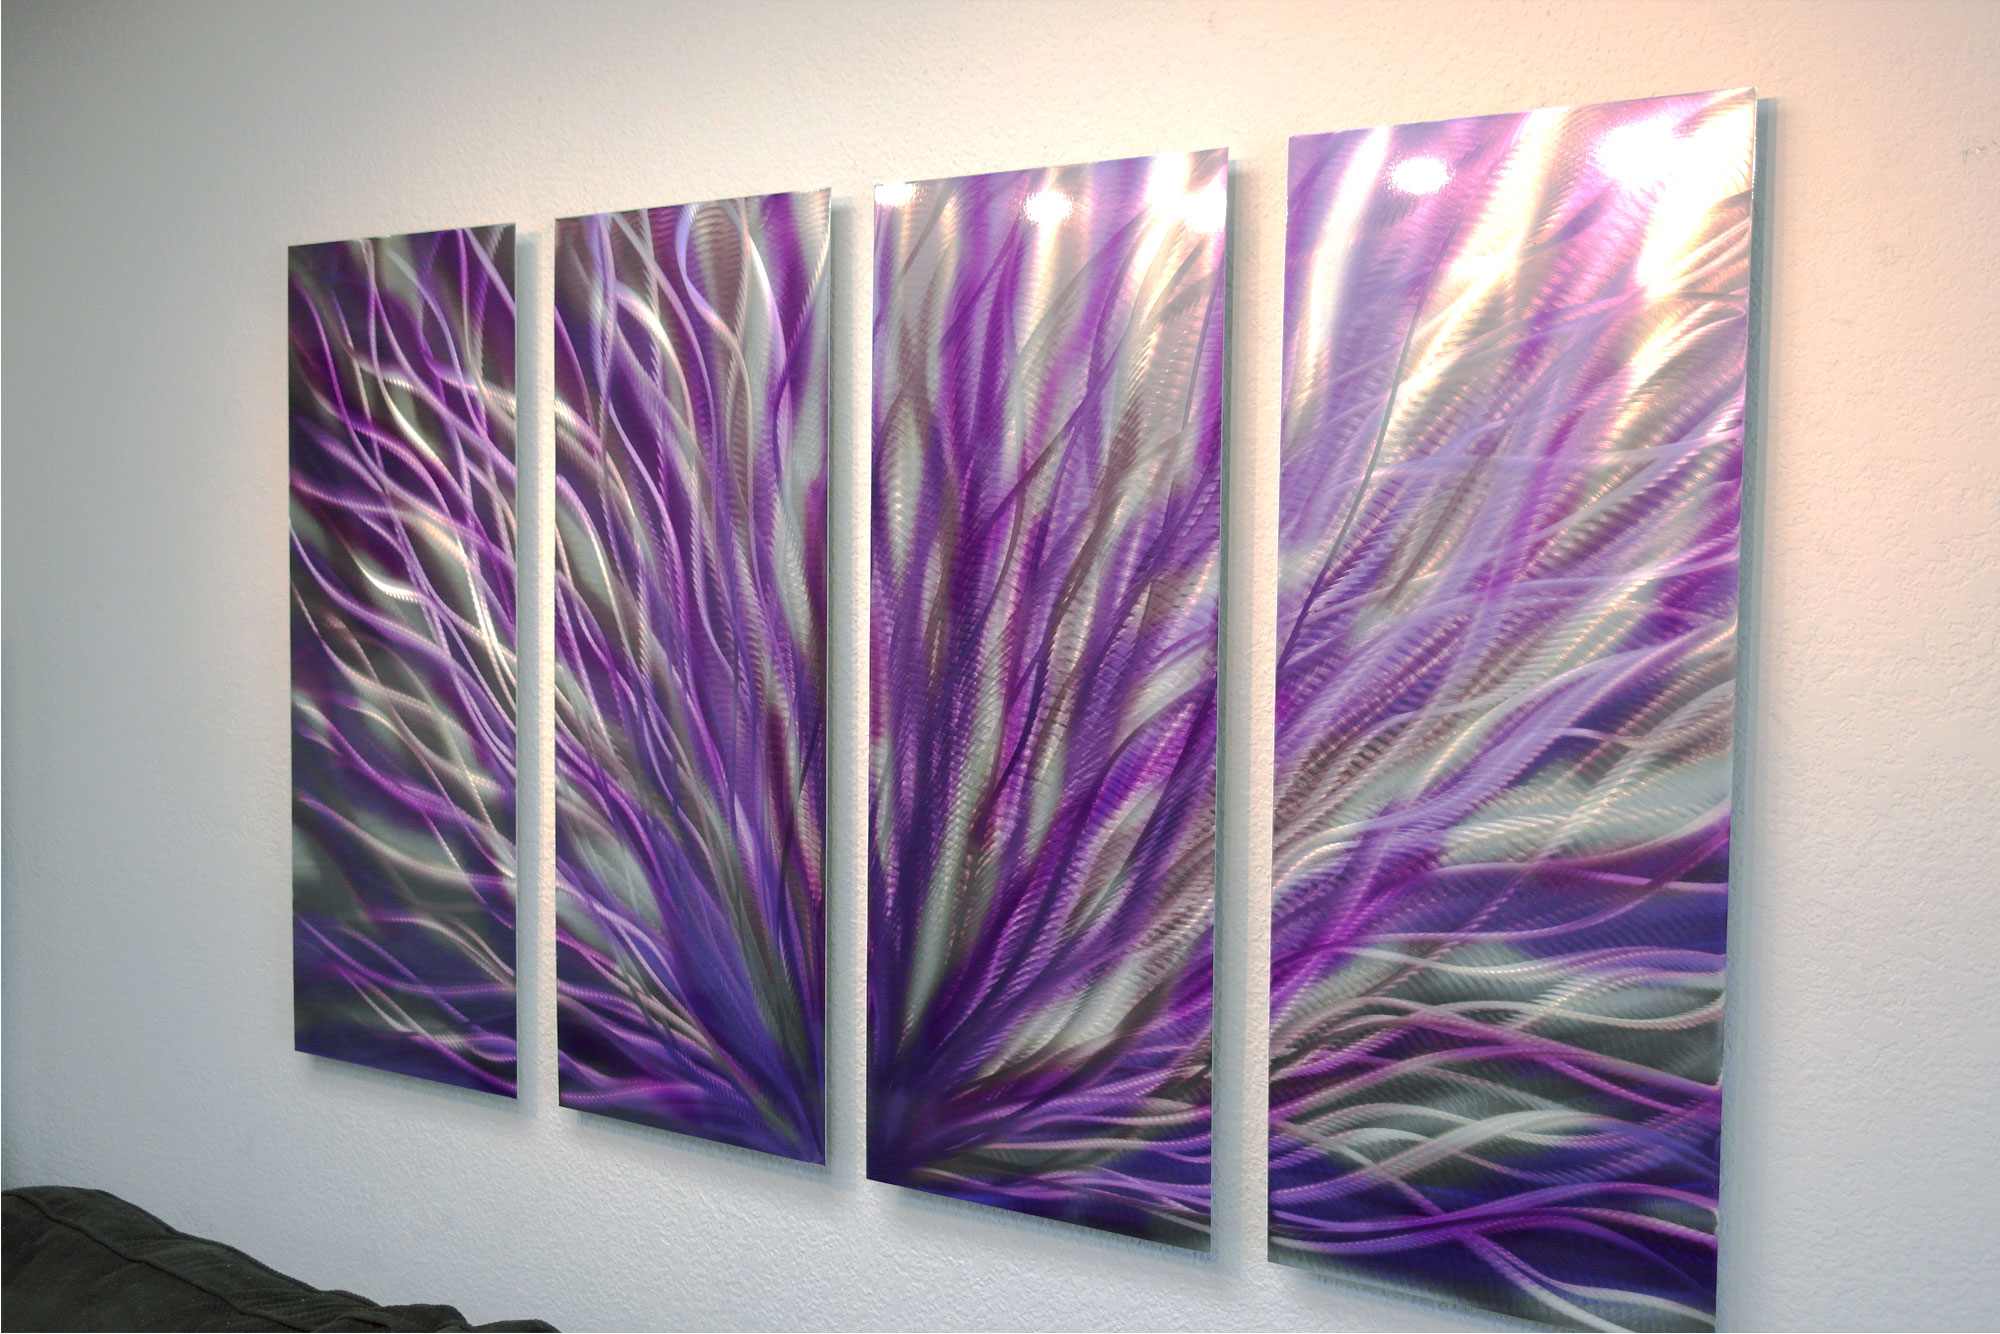 ... Radiance Purple 36x63 - Abstract Metal Wall Art Contemporary Modern Decor - Thumbnail 3 & Radiance Purple 36x63 - Abstract Metal Wall Art Contemporary Modern ...